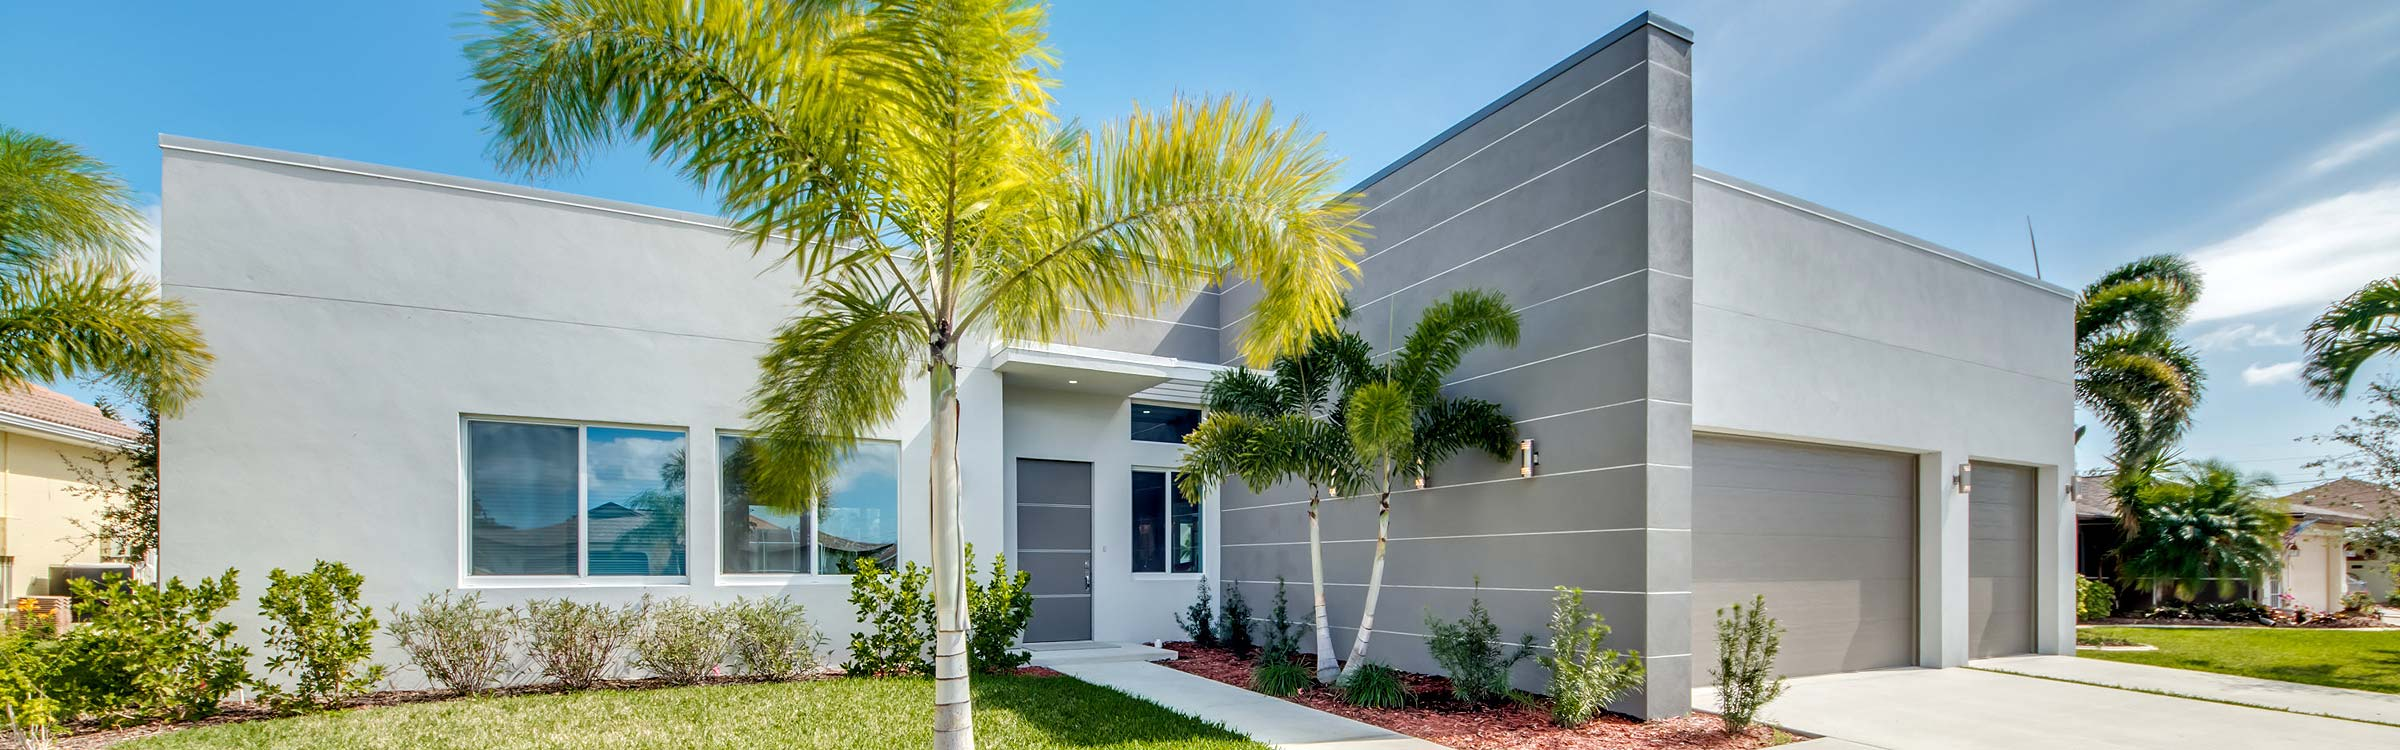 New construction in Cape Coral, Fort Myers, Florida - Construction planning